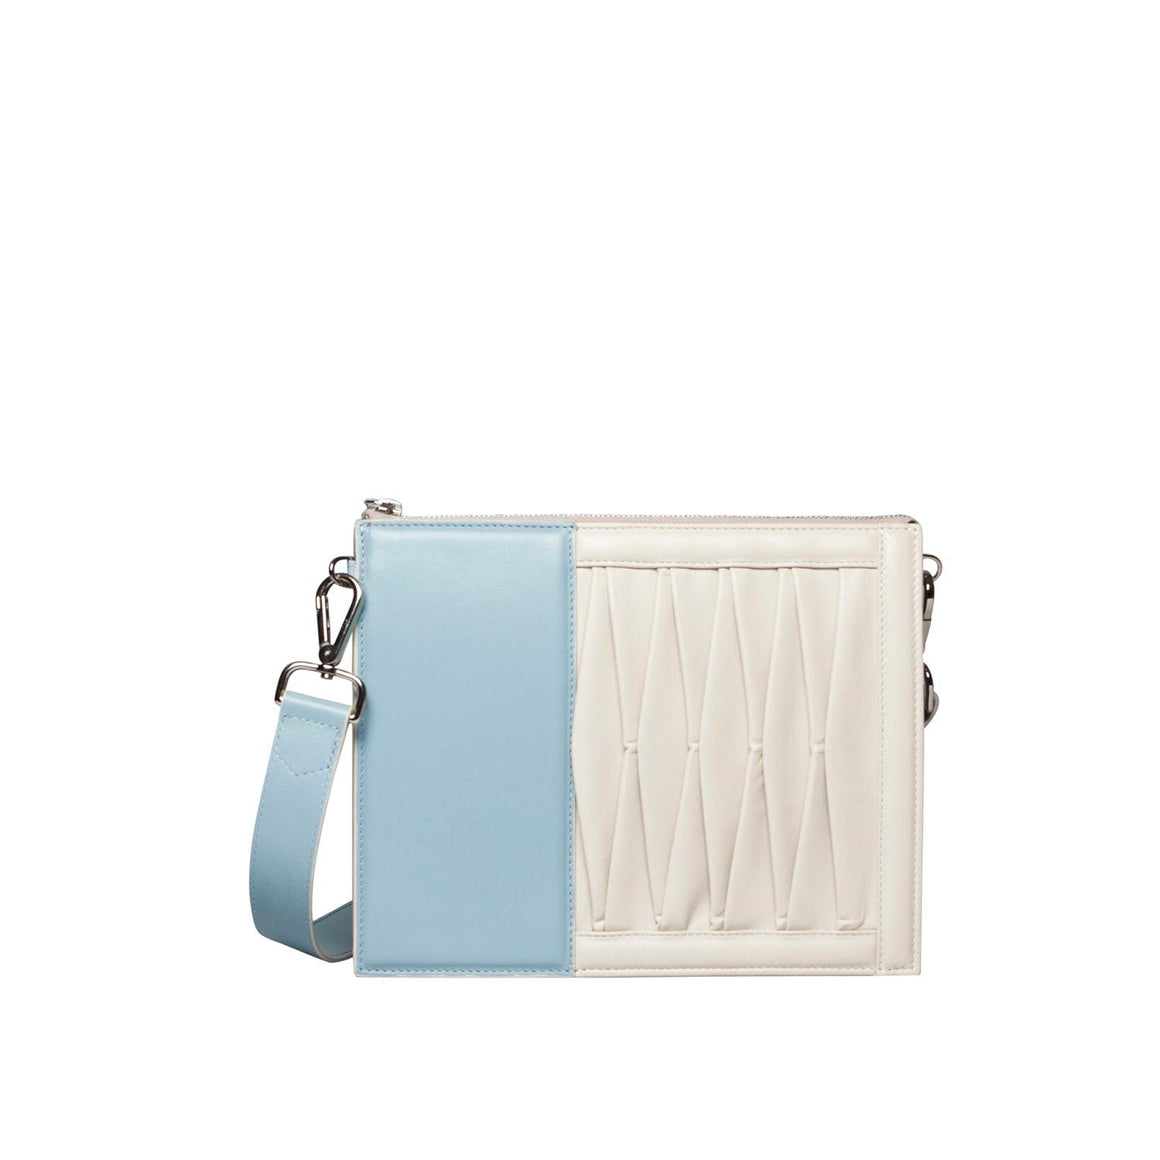 10014 Infinity Power Shoulder: Sky blue/Off-white Lambskin